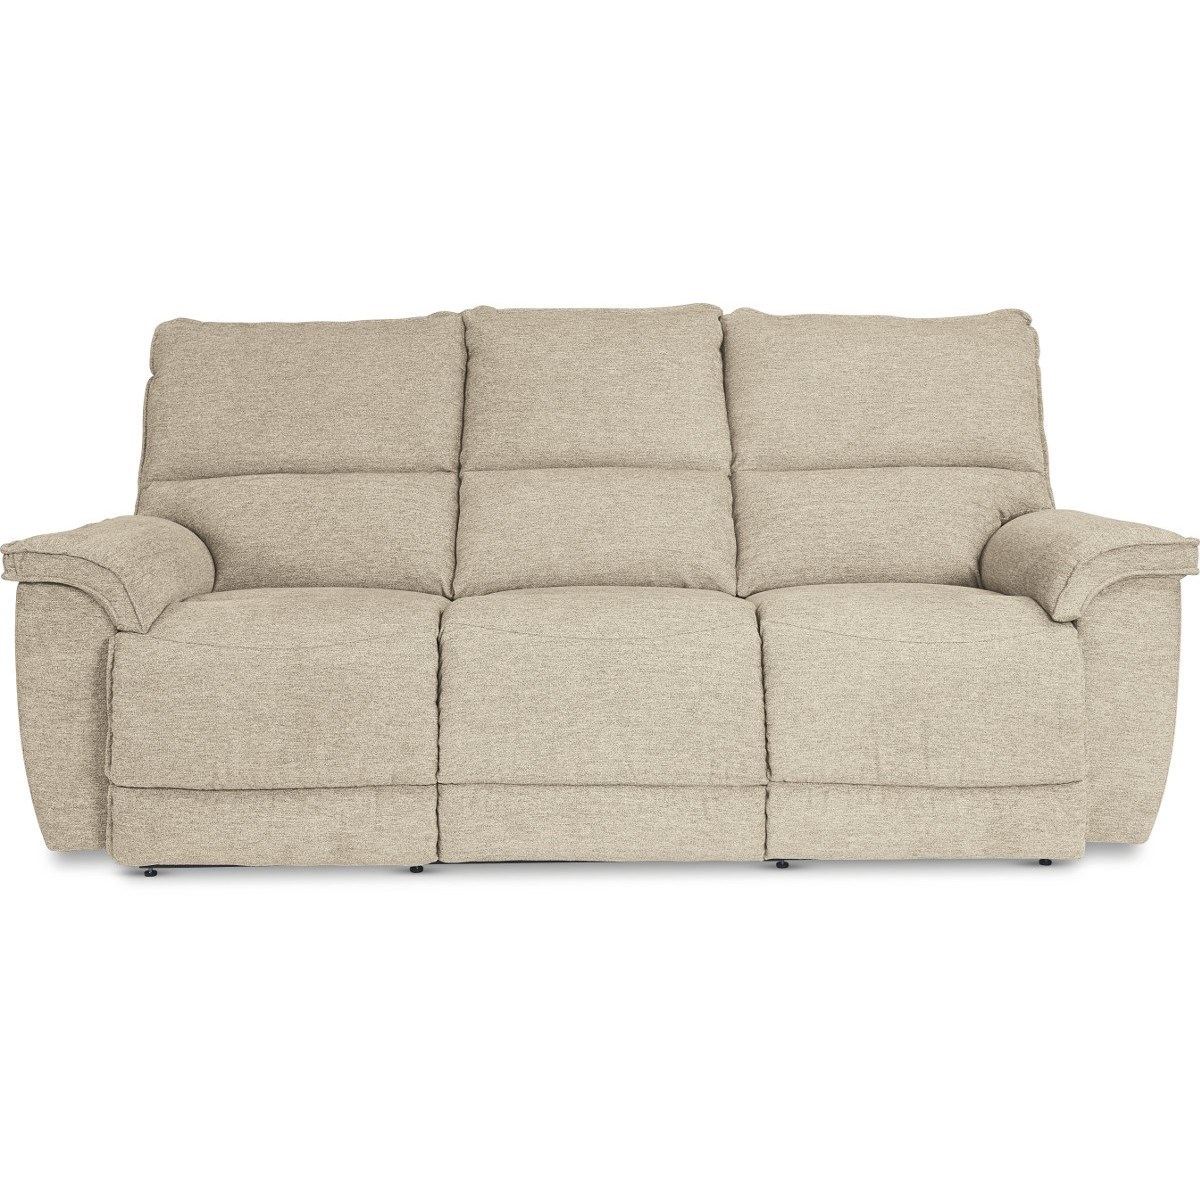 Casual Power Reclining Sofa with USB Charging Ports and Power Tilt Headrests